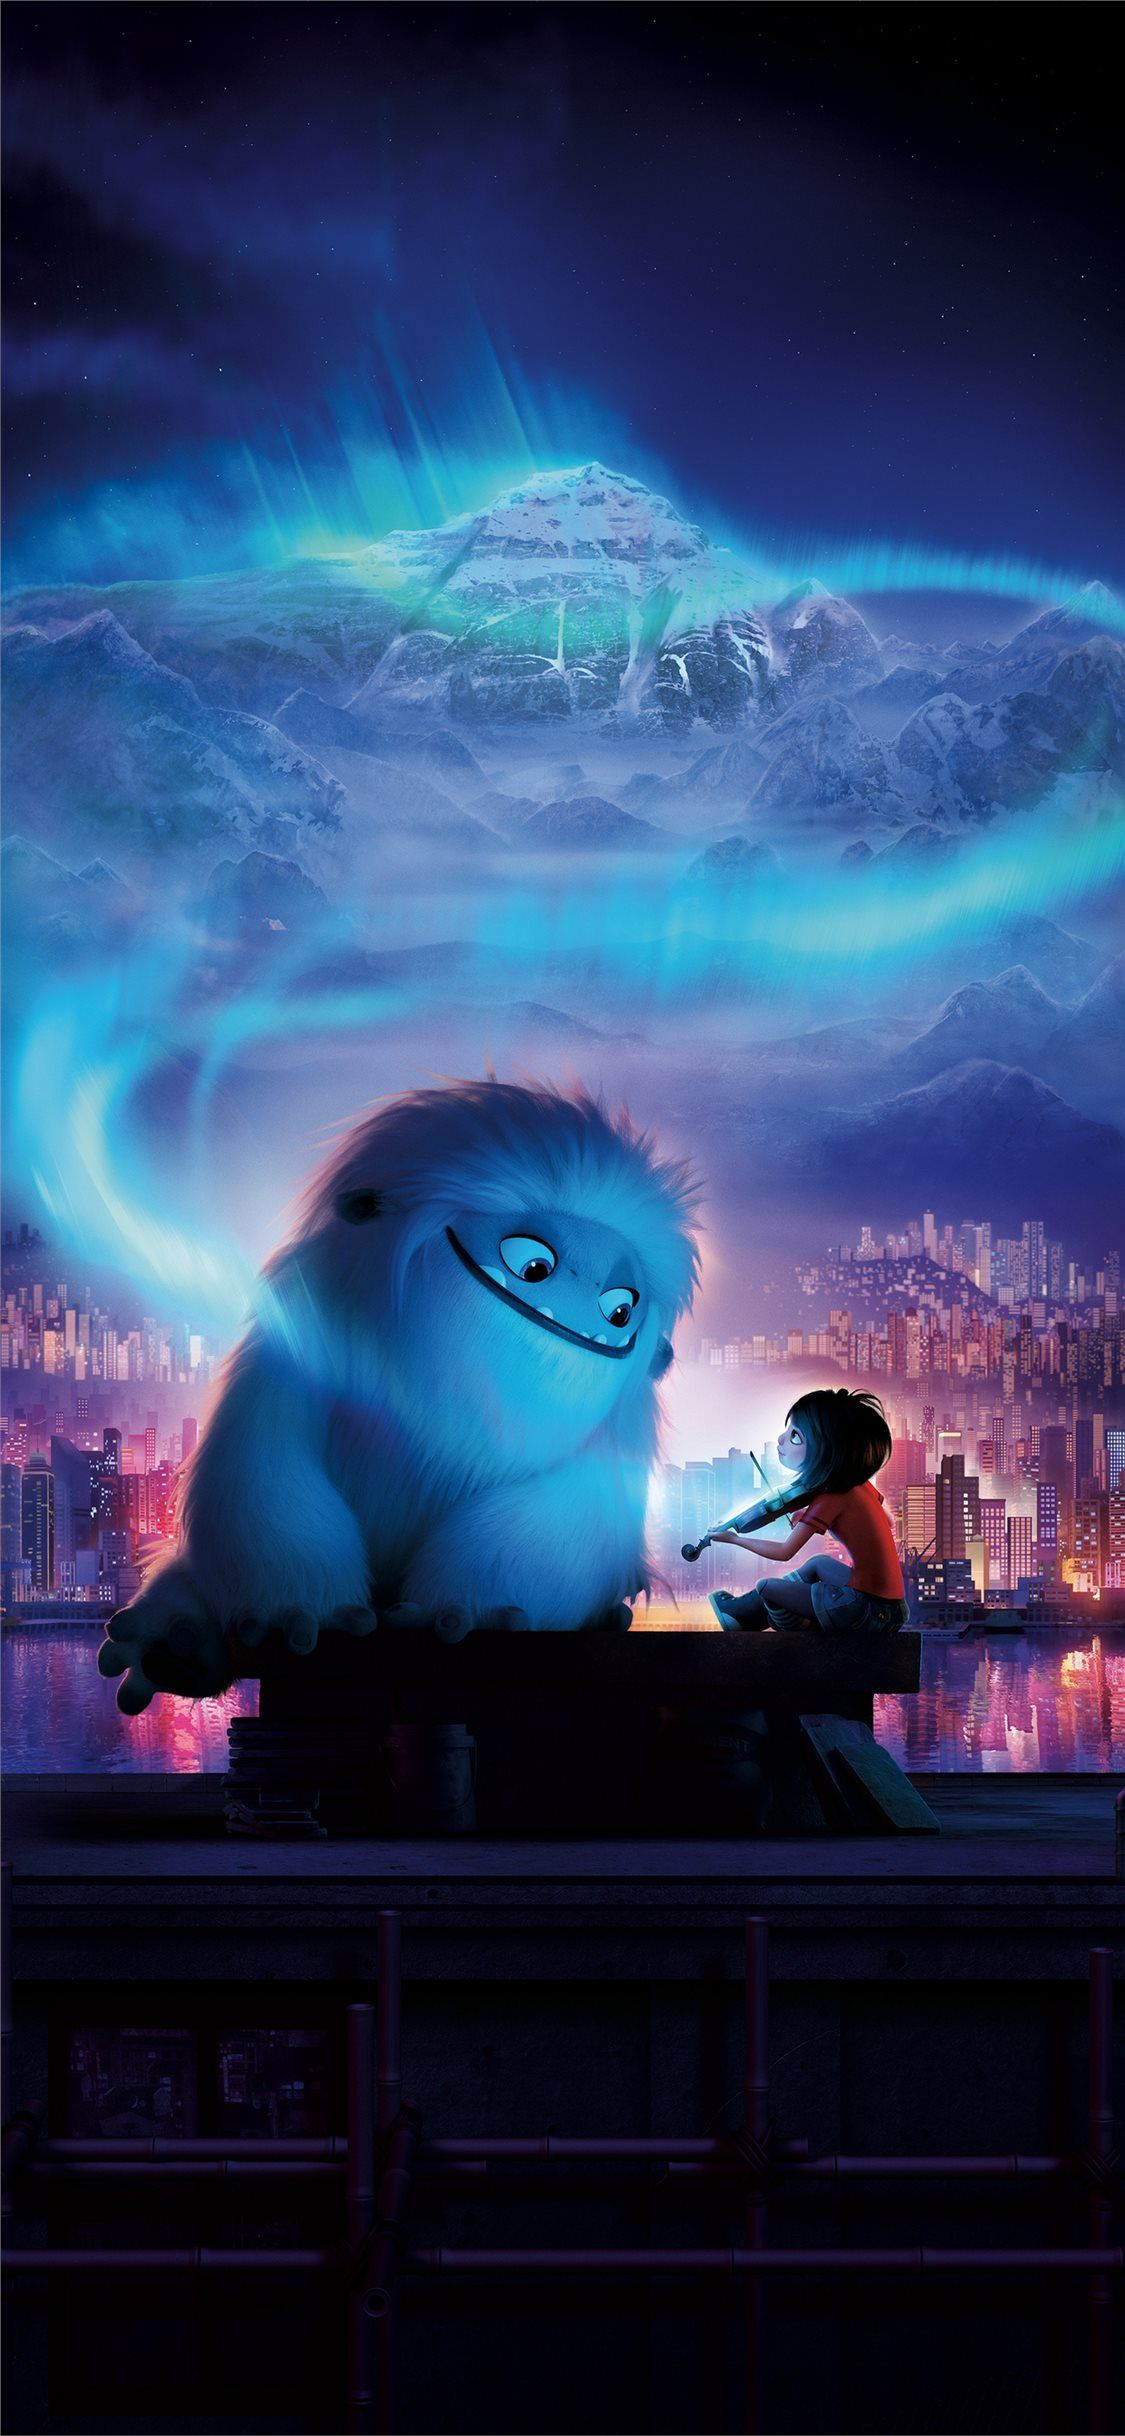 Free Download The Abominable 8k Wallpaper Beaty Your Iphone Abominable 2019 Movies Animated In 2020 Cute Disney Drawings Disney Wallpaper Cute Cartoon Wallpapers